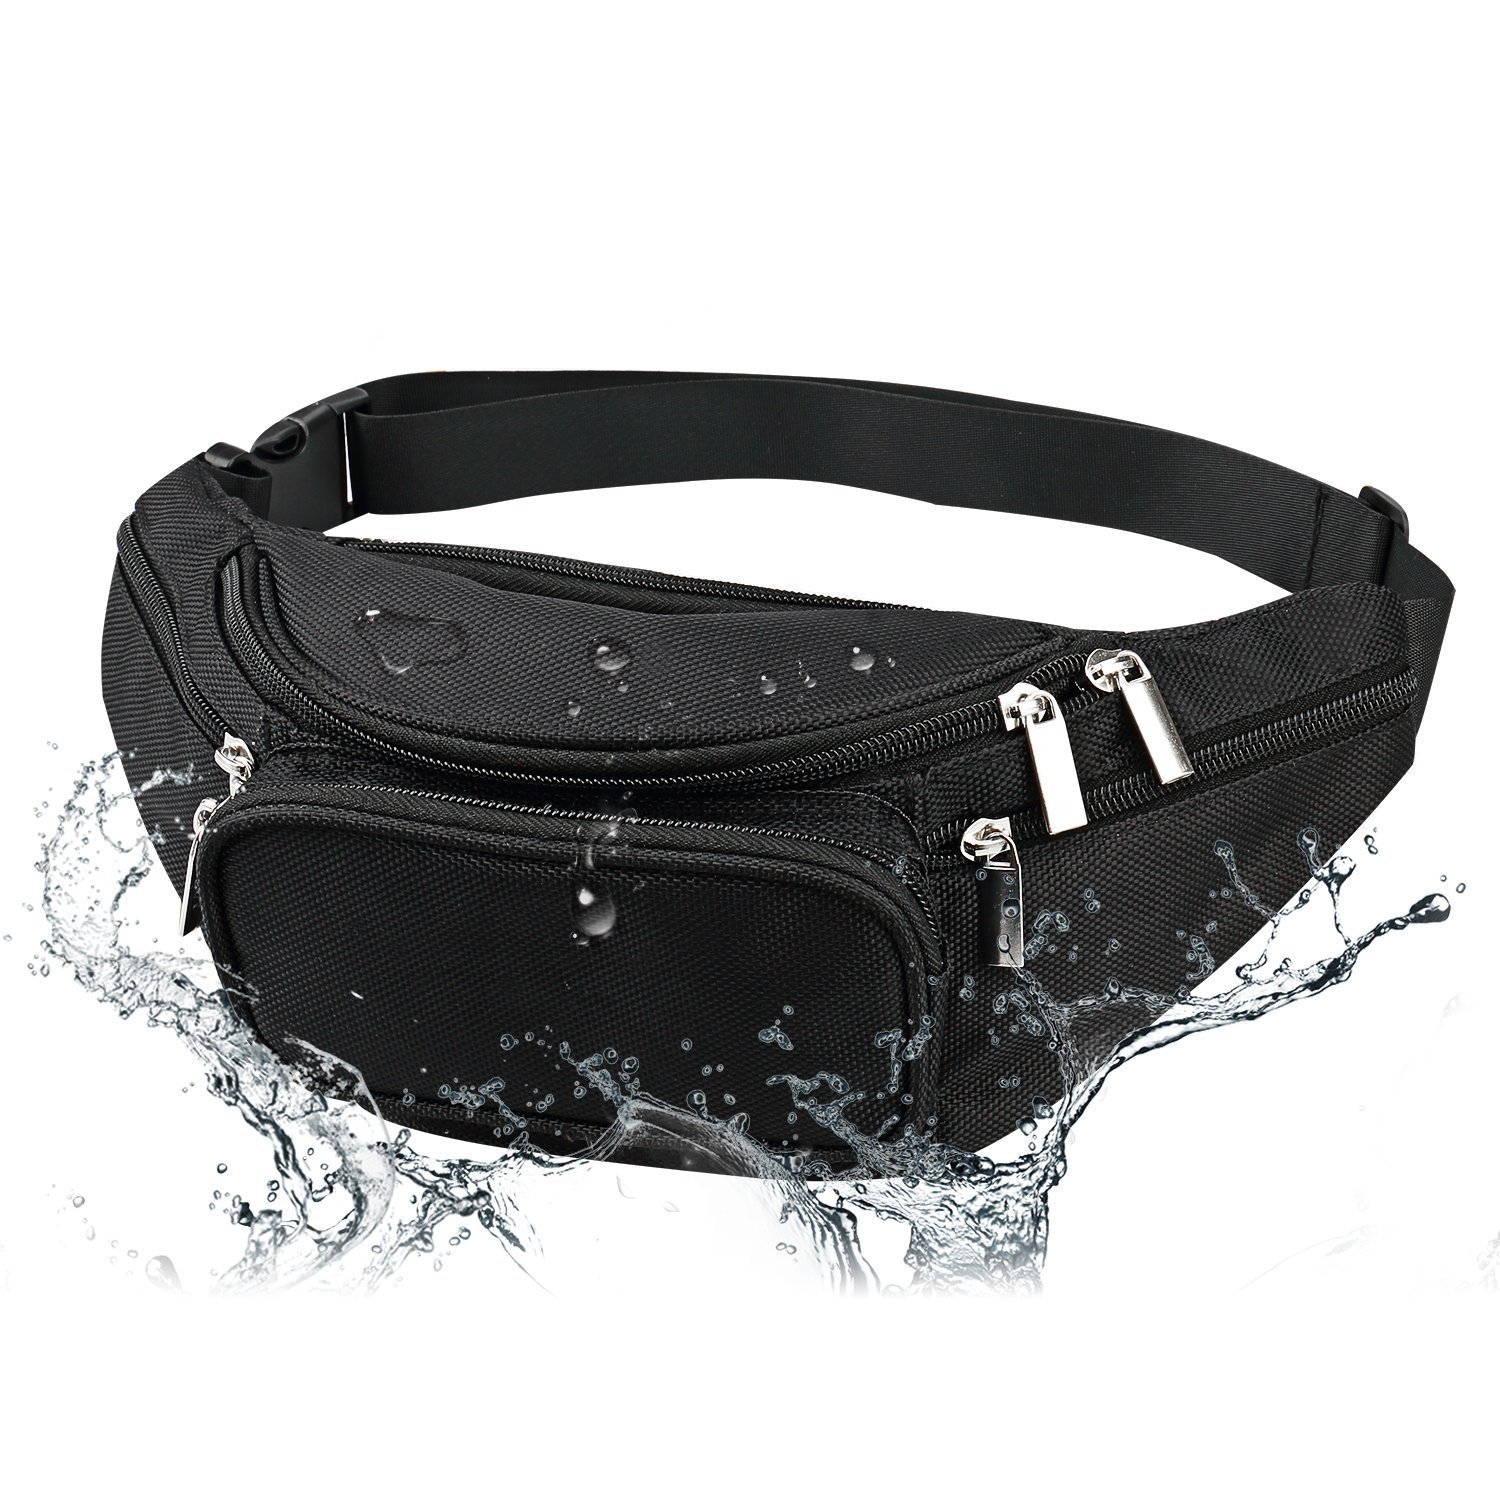 Men's Waterproof Black Fanny Pack Adjustable Buckle Hip Waist Pack 6 Zippers 5 Pockets Bum Waist Pouch For Running Hiking Cycling Outdoor Sports